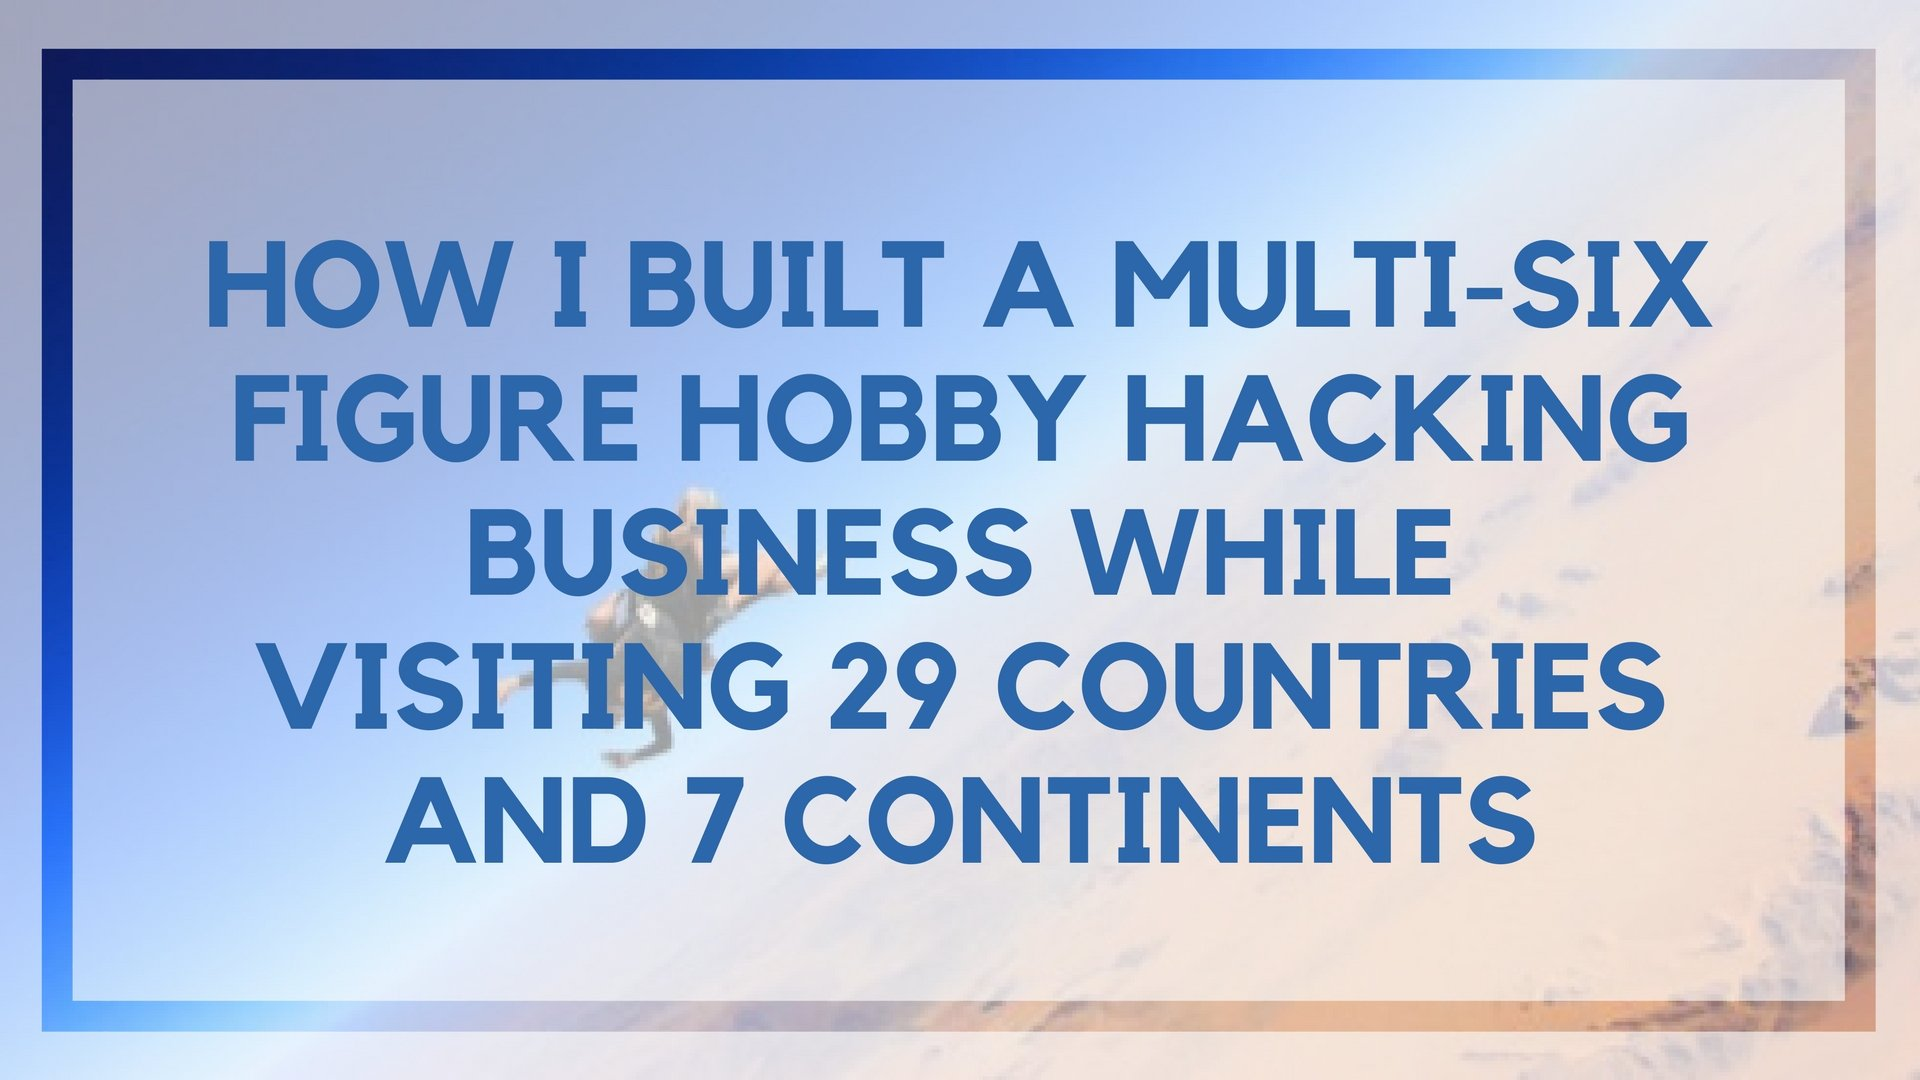 How I Built a Multi-Six Figure Hobby Hacking Business While Visiting 29 Countries And 7 Continents